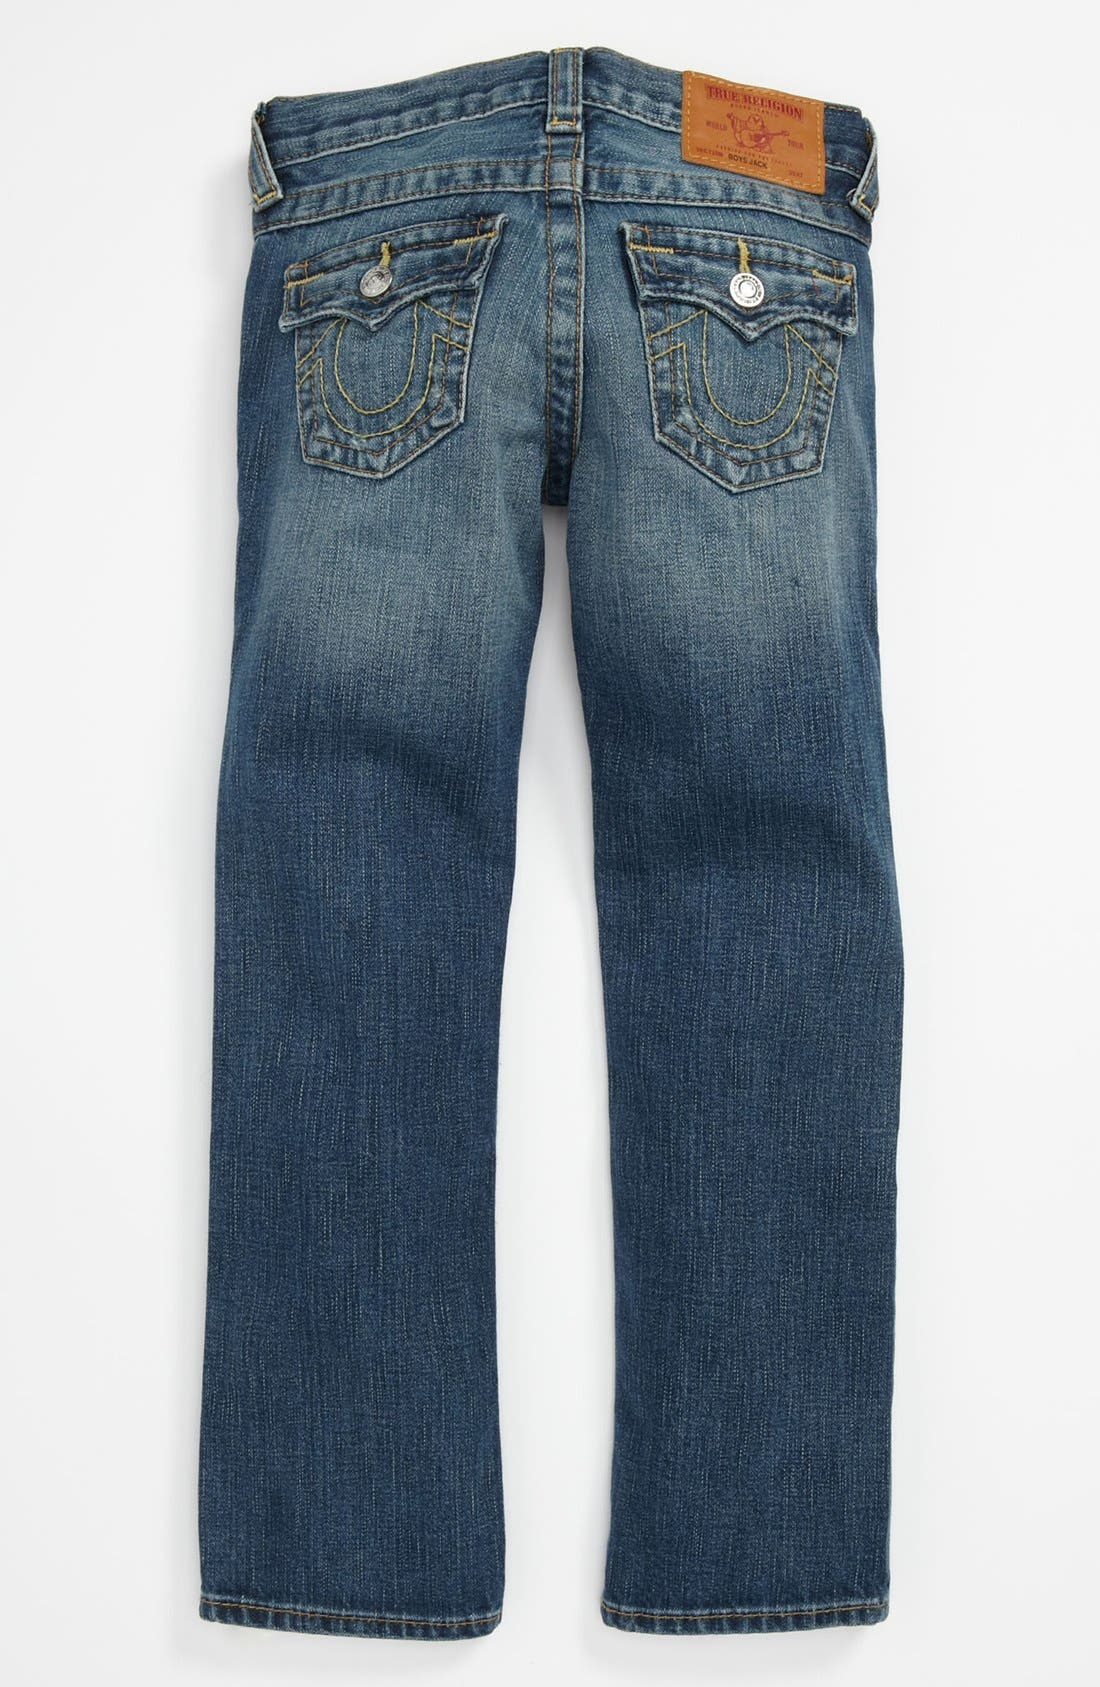 Main Image - True Religion Brand Jeans 'Jack' Relaxed Straight Leg Jeans (Big Boys)